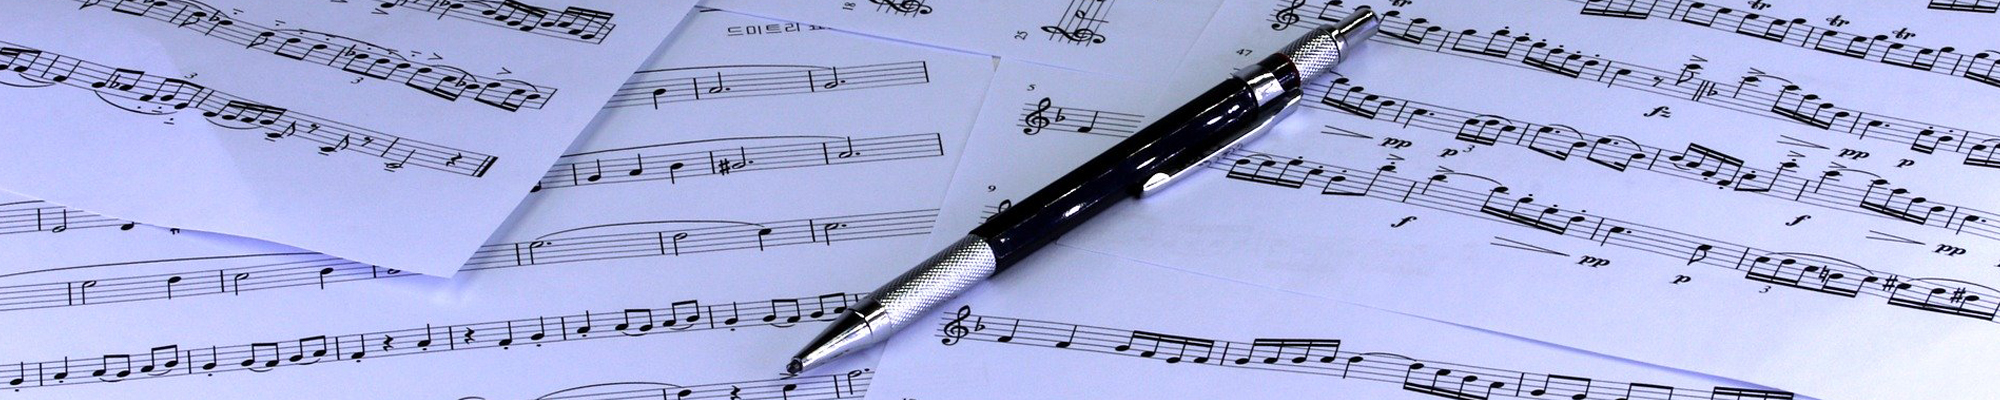 sheets of music and pen